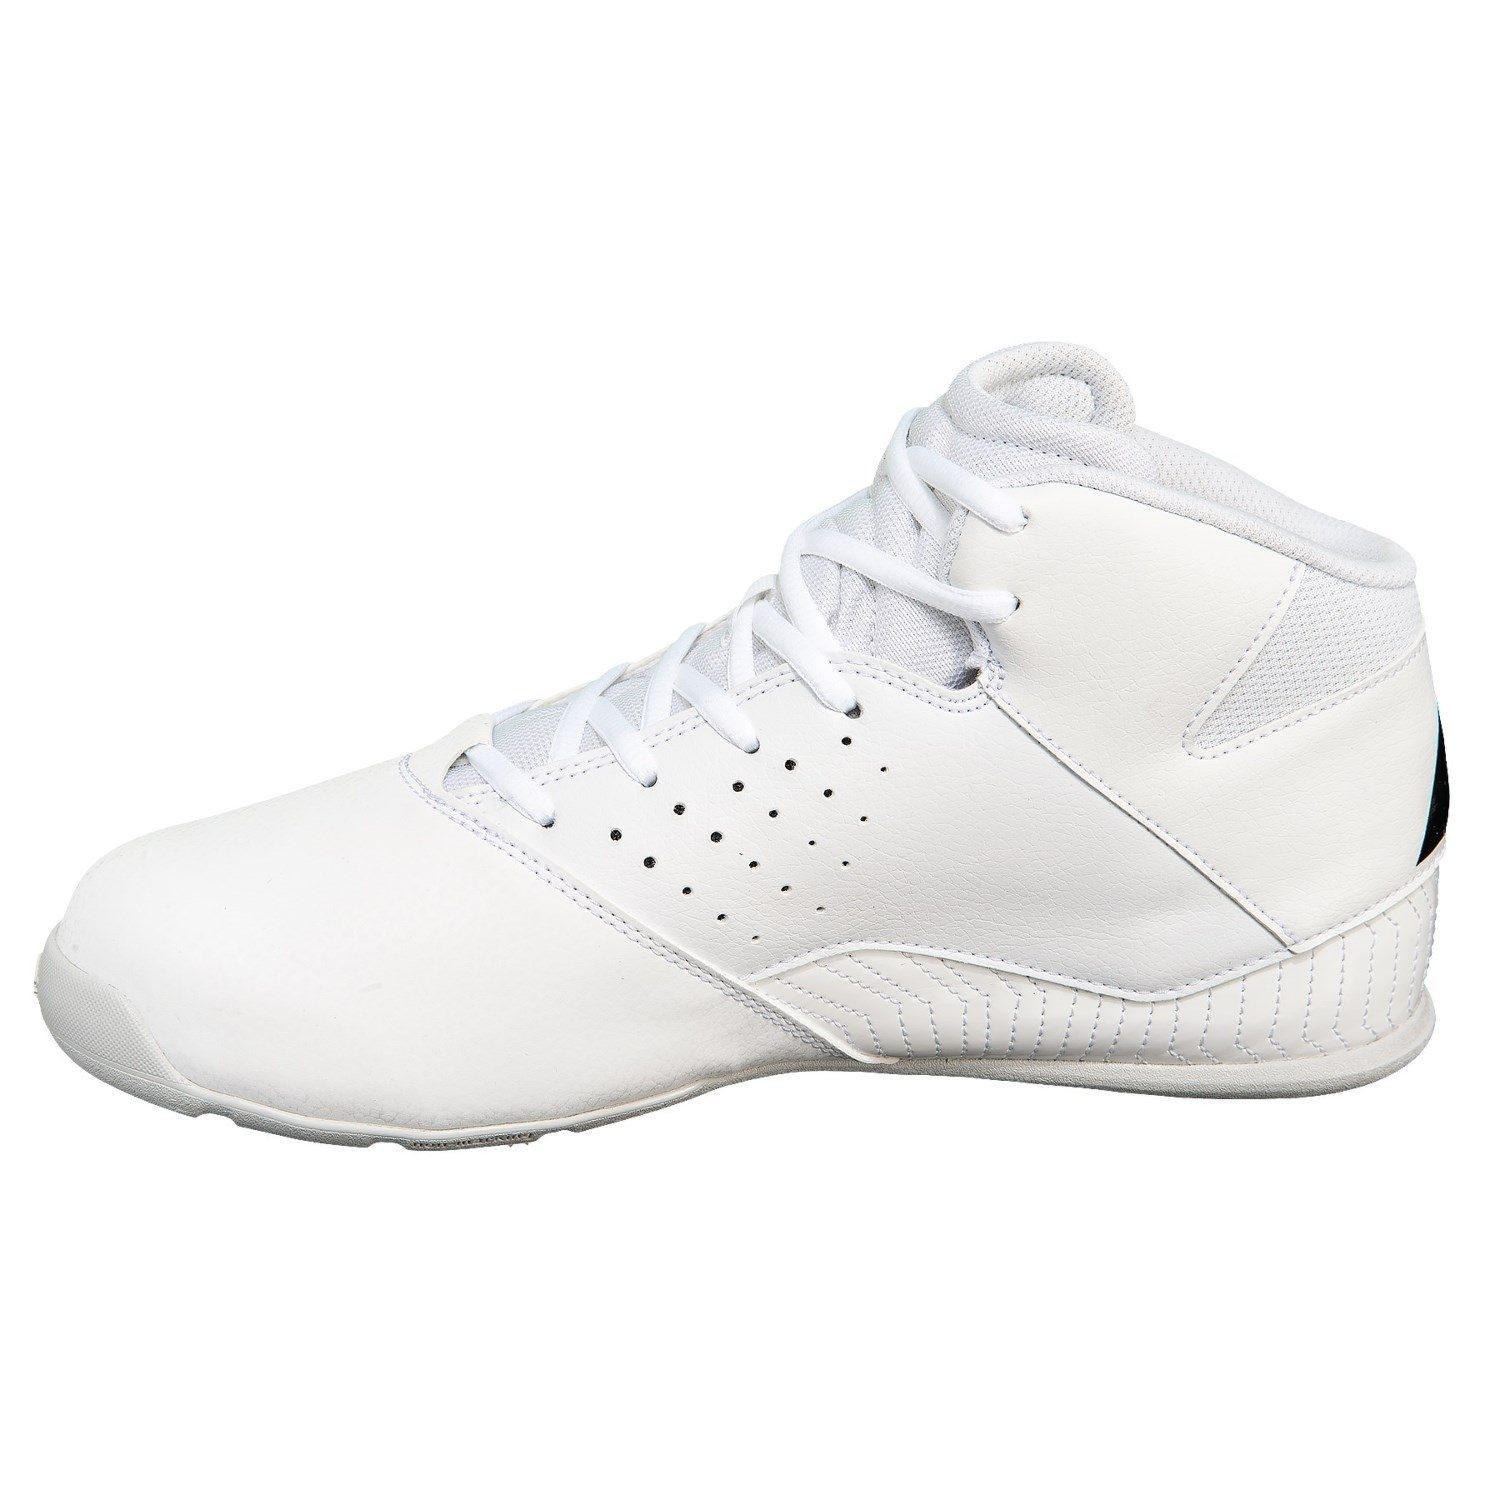 size 40 6fb18 889b5 adidas Next Level Speed 5 Basketball Shoes (For Men)